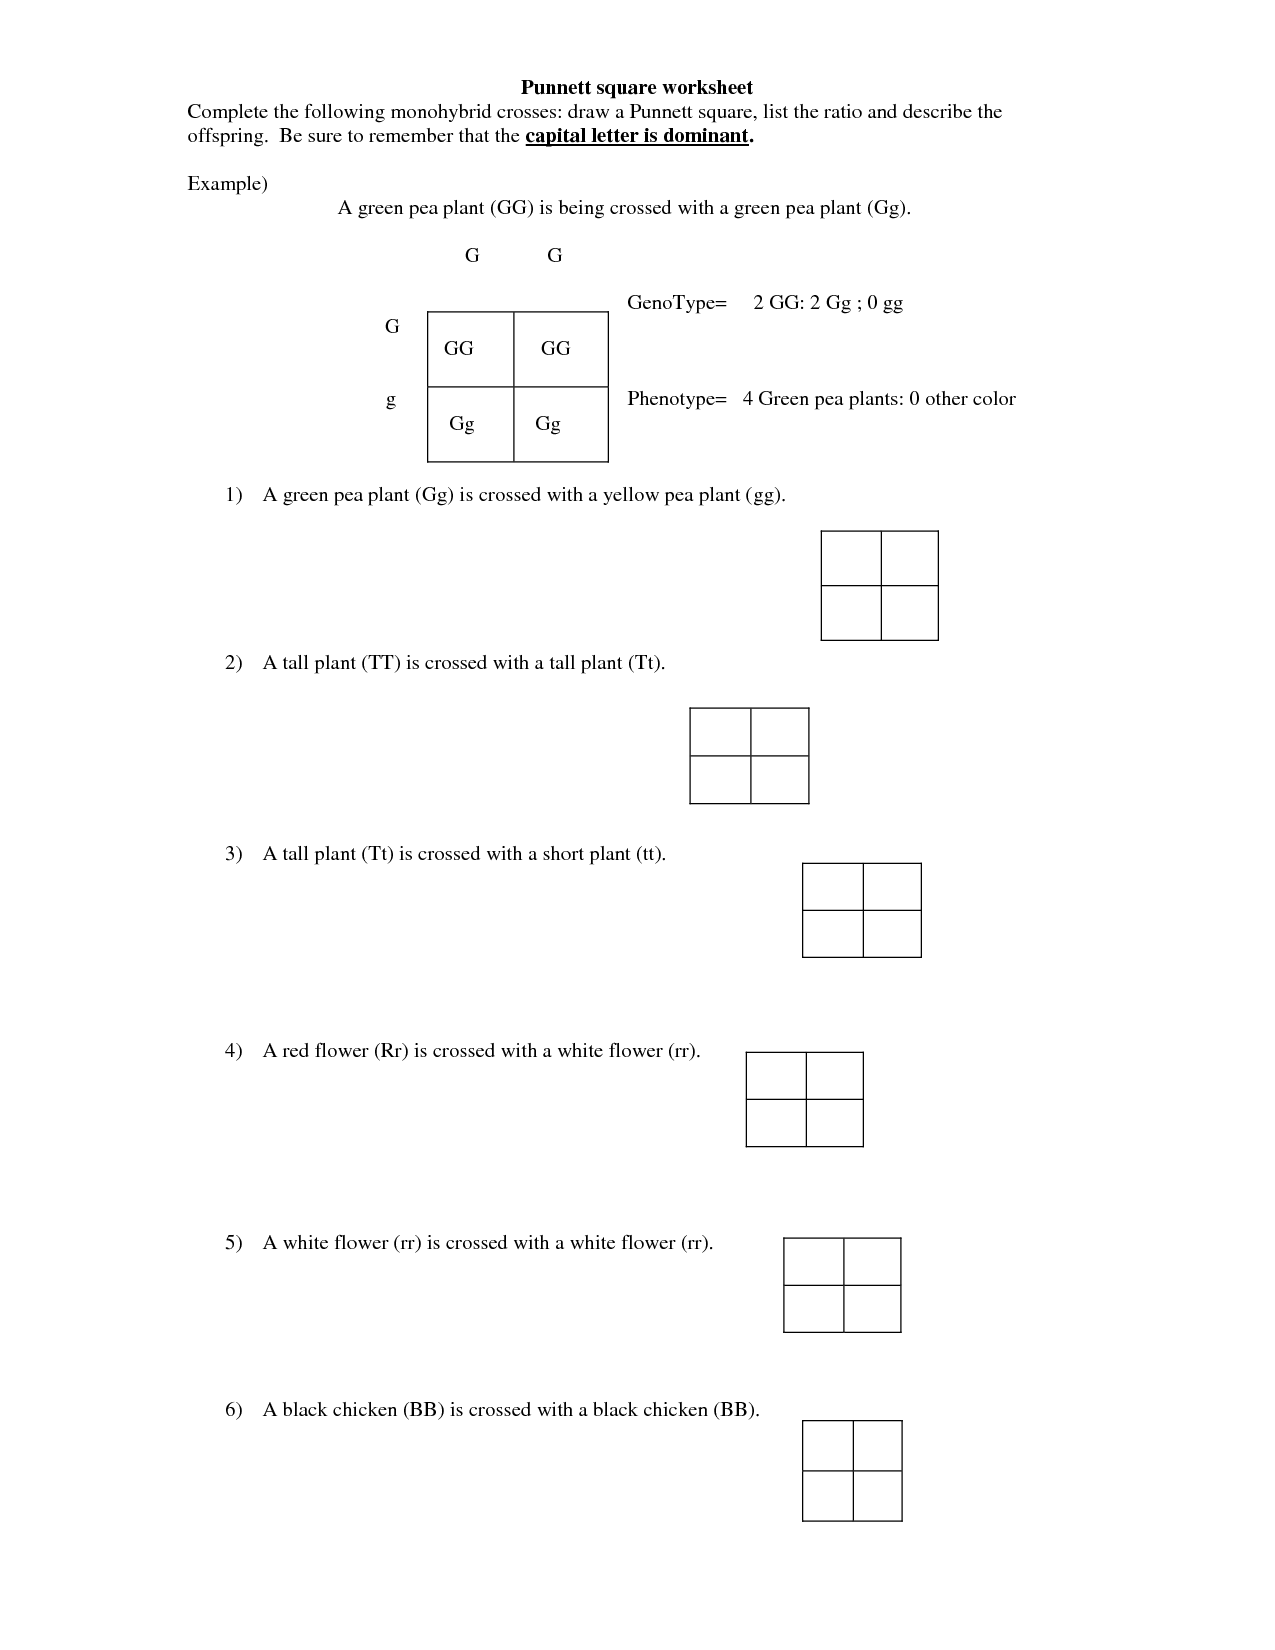 worksheets on monohybrid cross - Google Search | Punnett ...